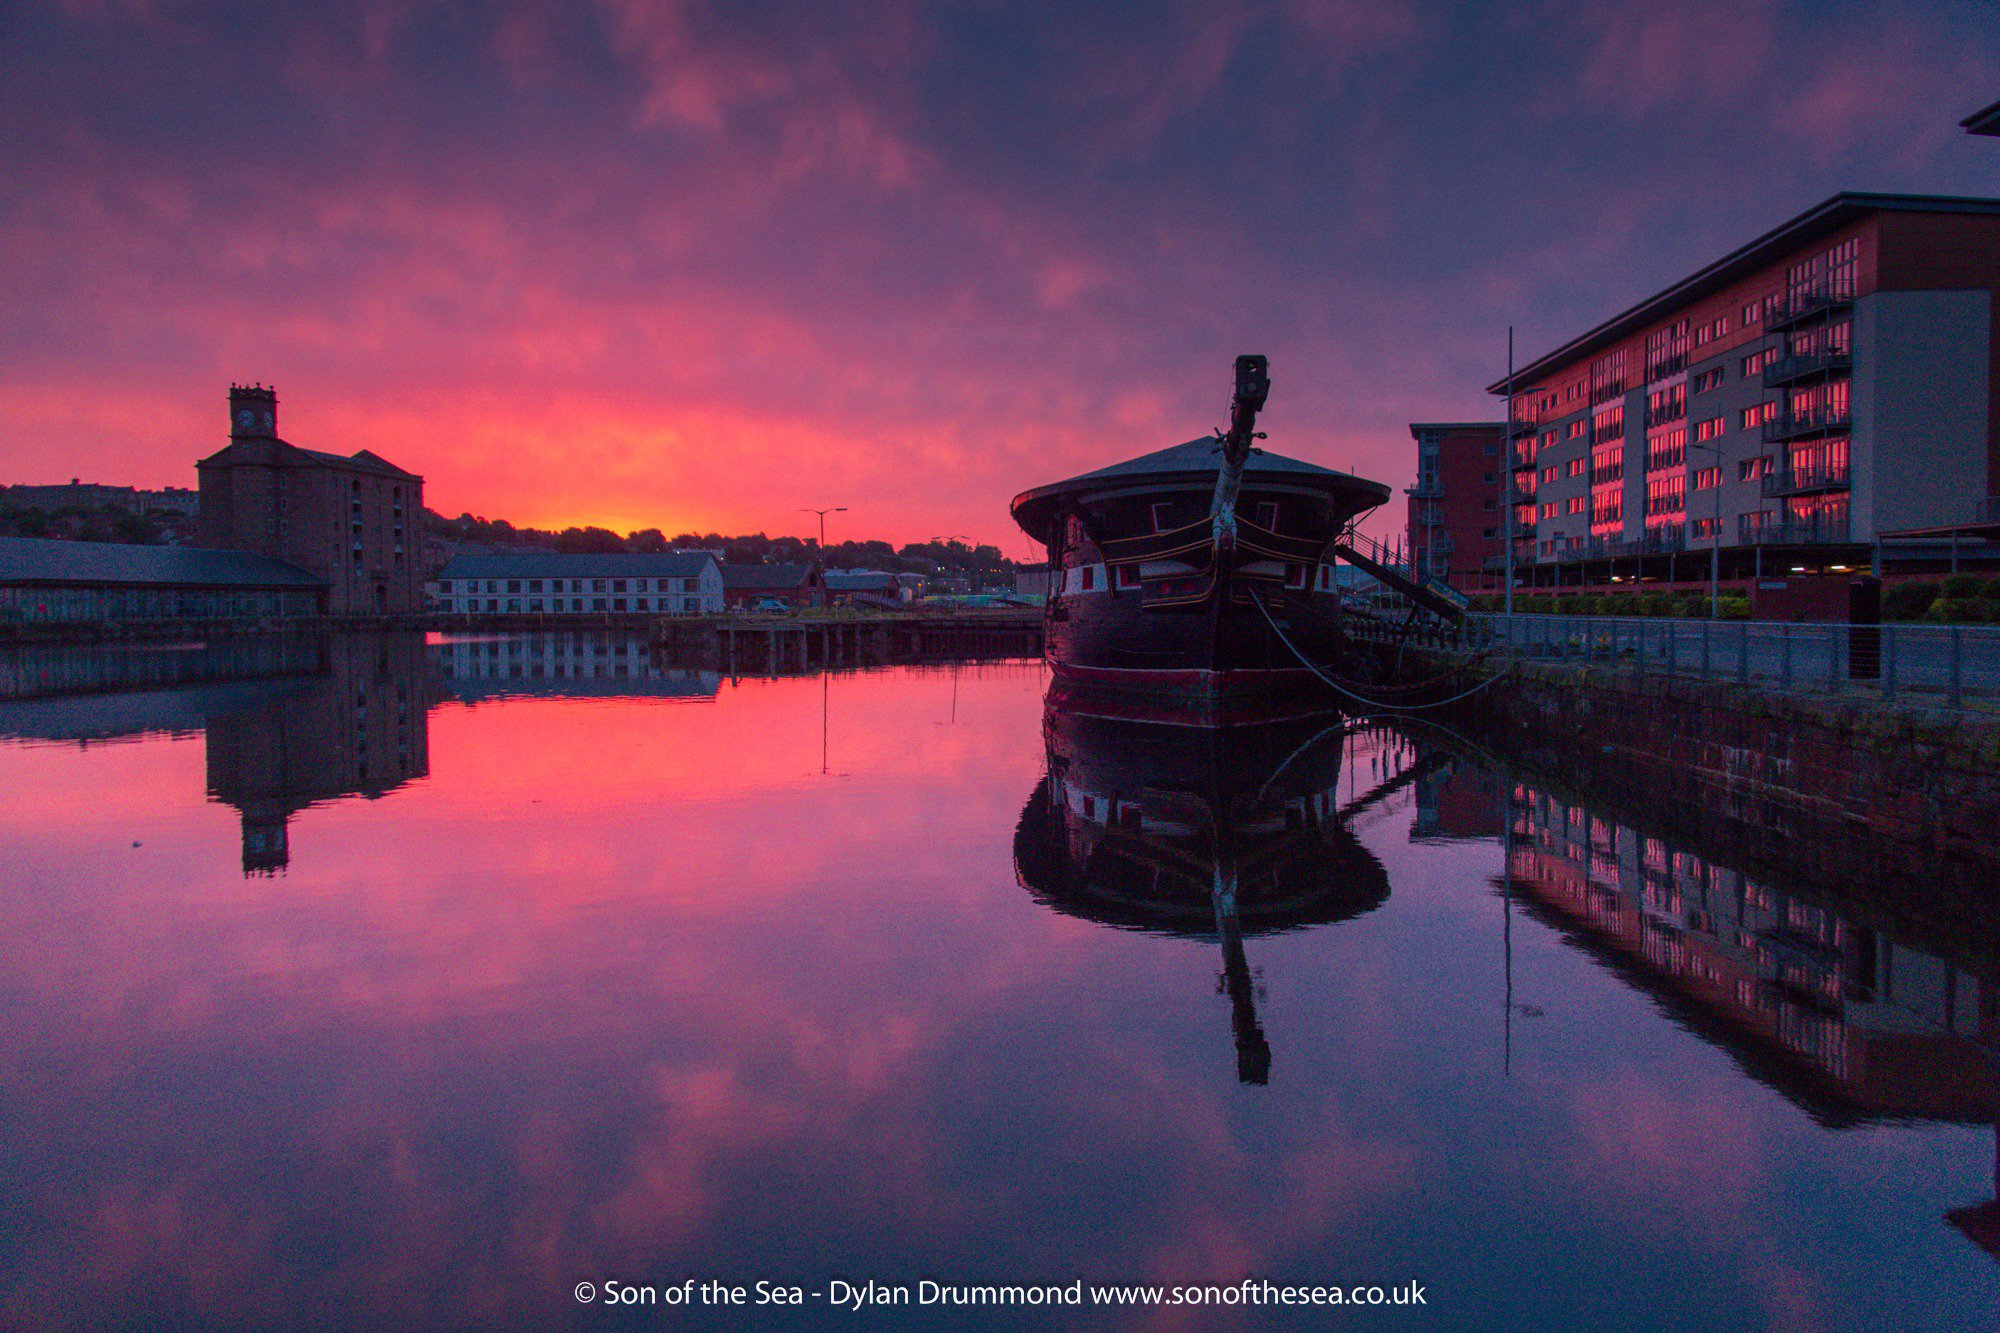 @Creative_Dundee One of my favourite spots in Dundee has to be the setting for @FrigateUnicorn  at City Quay. So much to see! #dundeeguide https://t.co/z34WLwFUfr